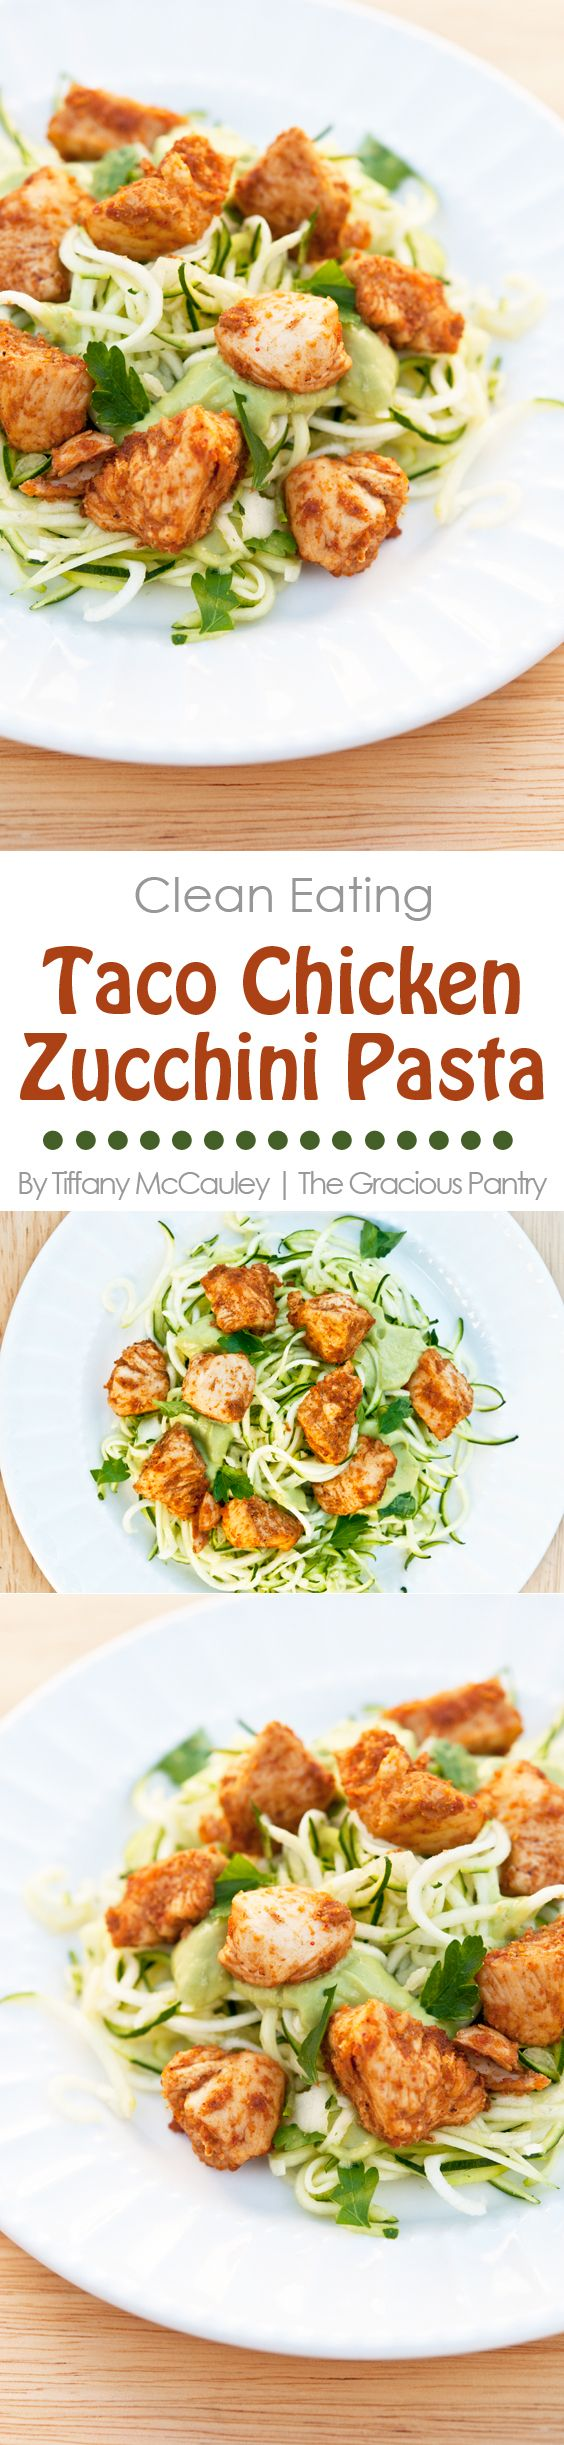 152 best clean eating no added sugar recipes images on pinterest clean eating recipes zoodle recipes zucchini pasta recipes low carb dinner taco forumfinder Choice Image